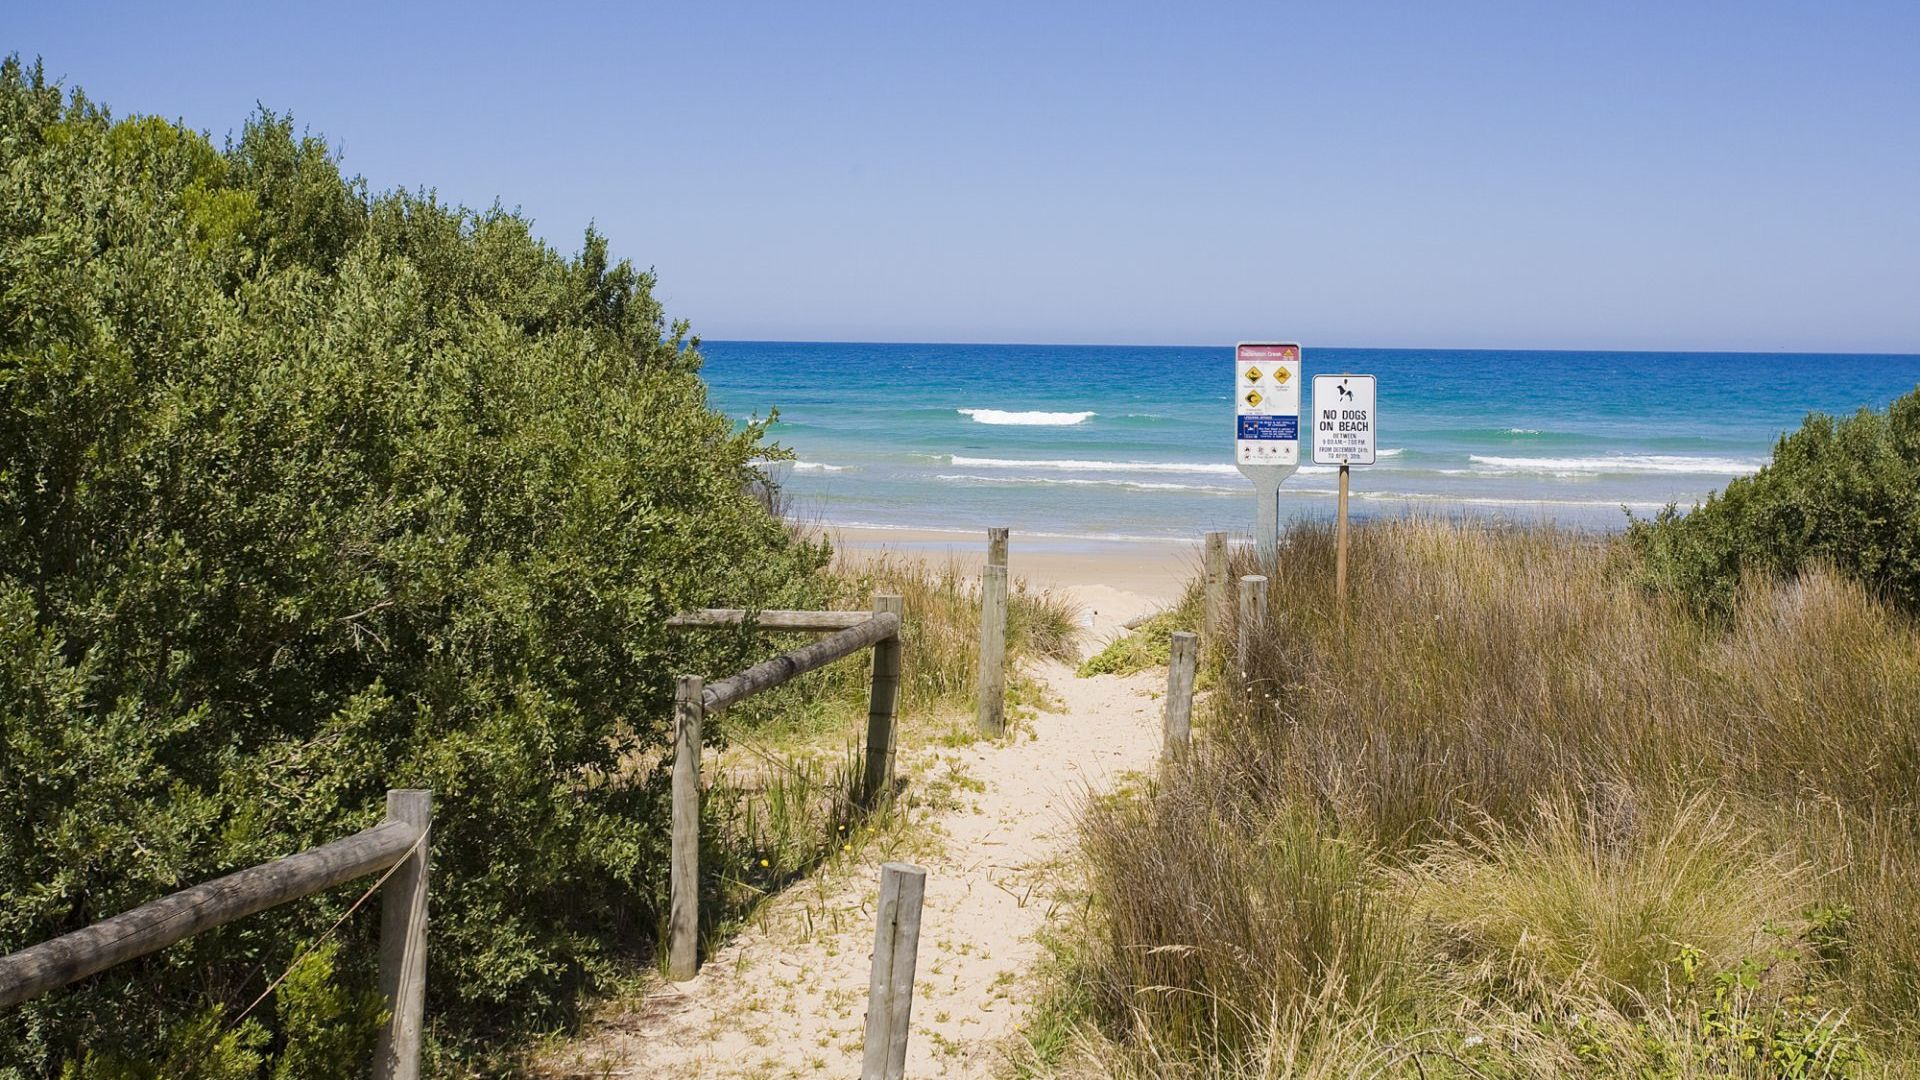 Seaclusion - Private Access To Beach  Pet Friendly